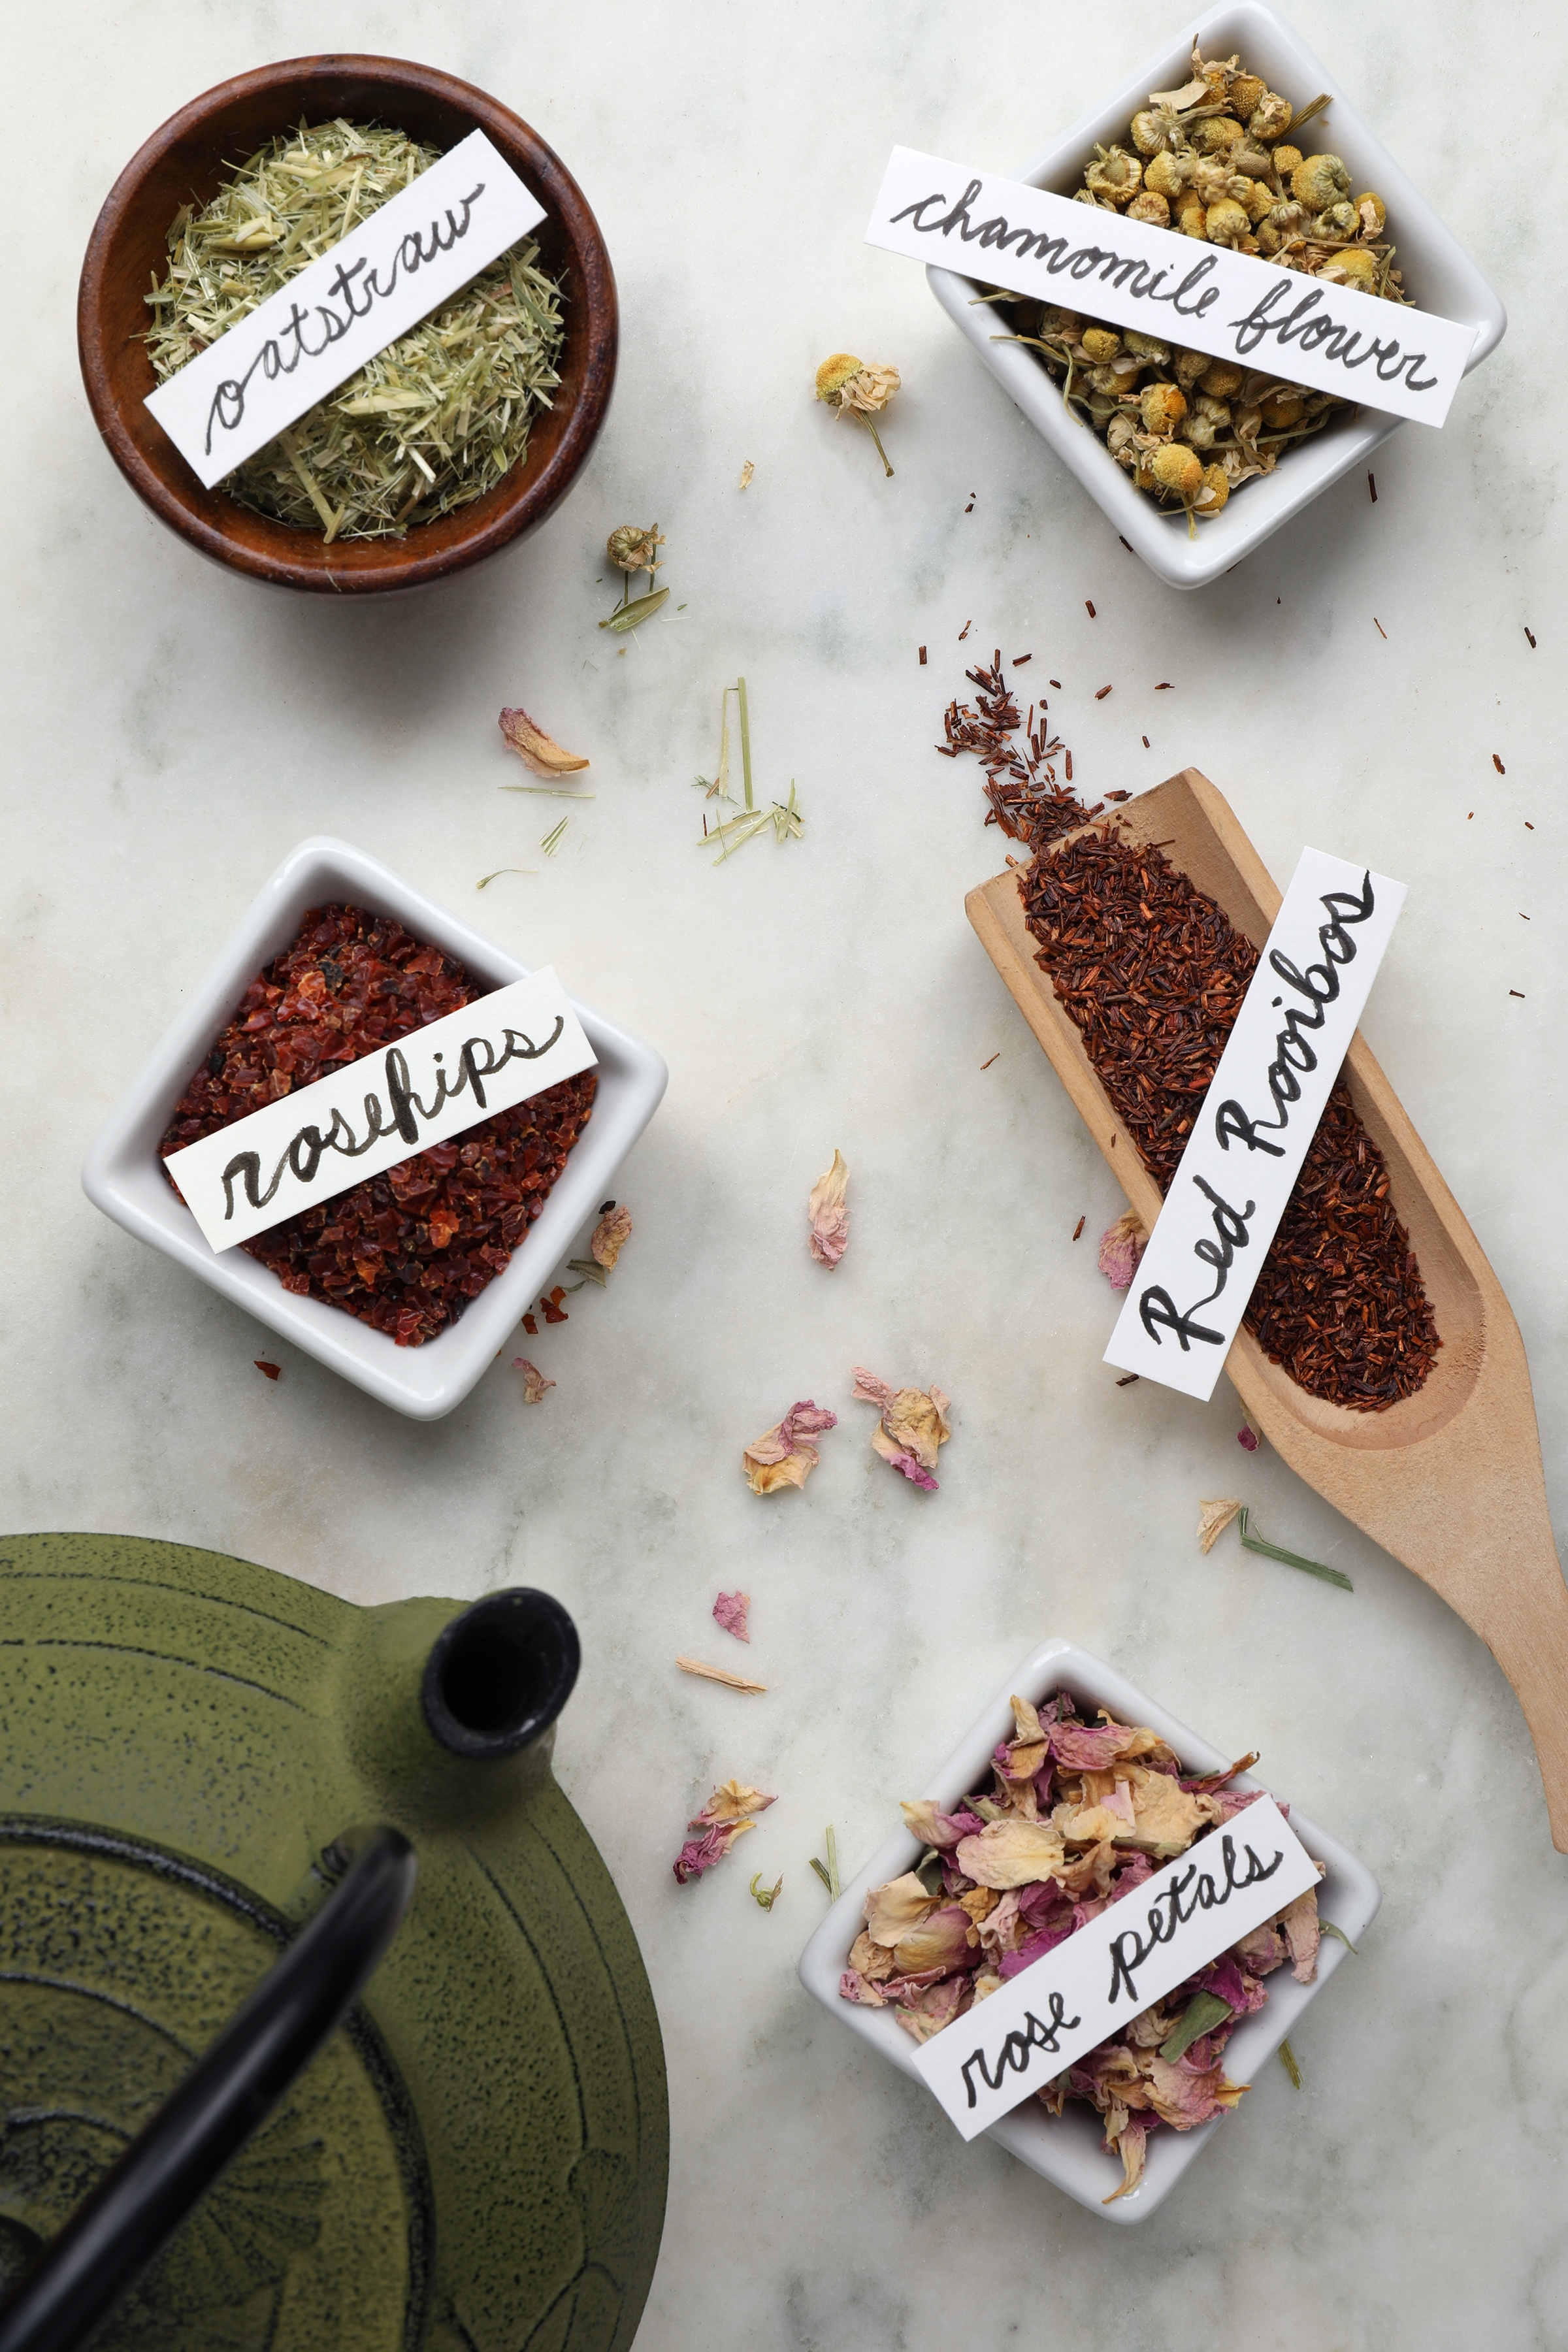 Red Rooibos tea loose-leaf in mini herb shovel near cast iron tea pot and containers of bulk herbs